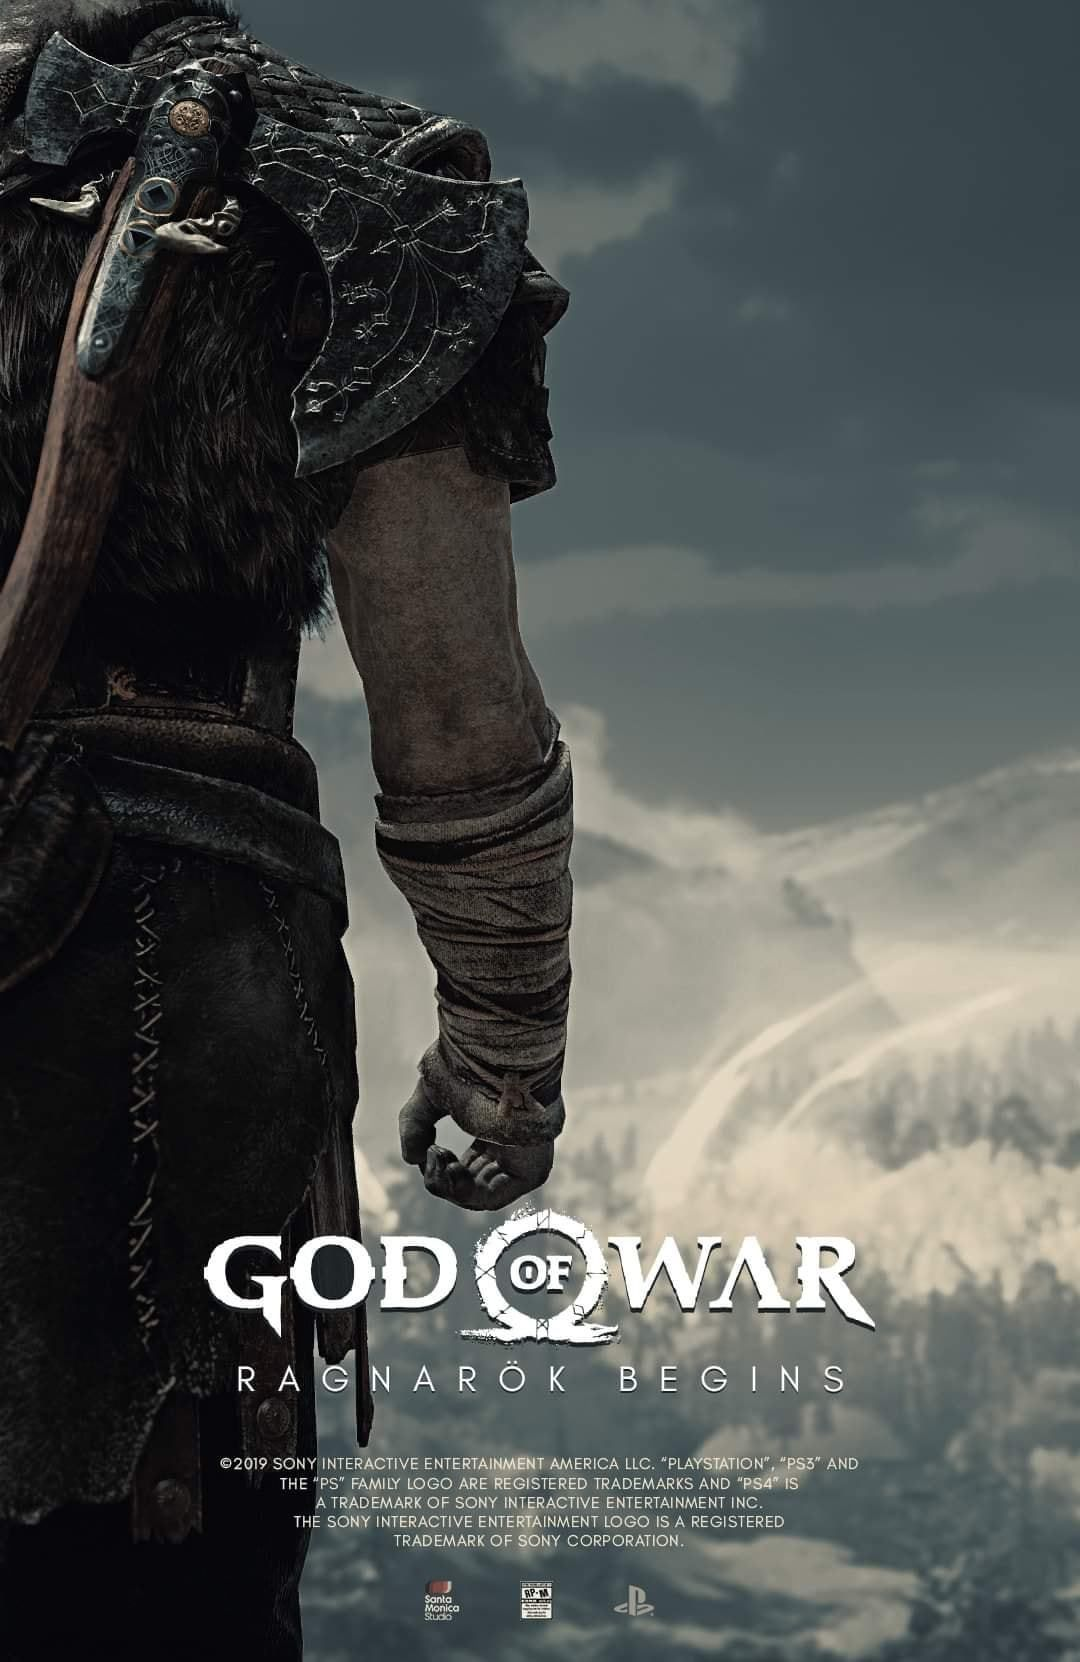 God Of War Ragnarok Begins Teased Source Https Uk Ign Com